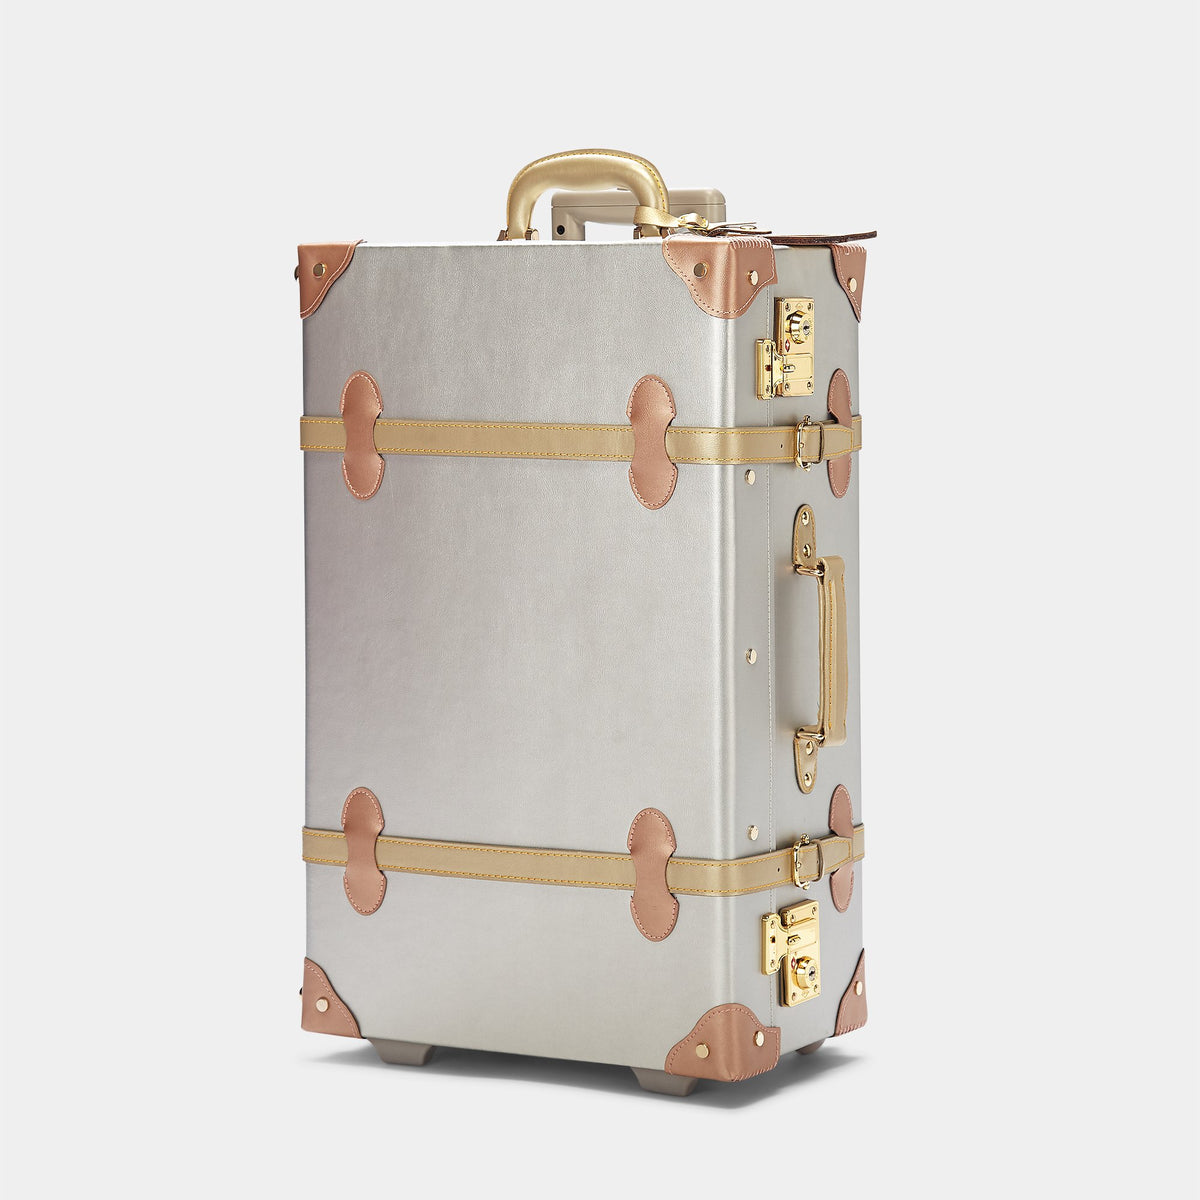 The Alchemist Stowaway - Retro-Style Cabin Luggage - Exterior Front